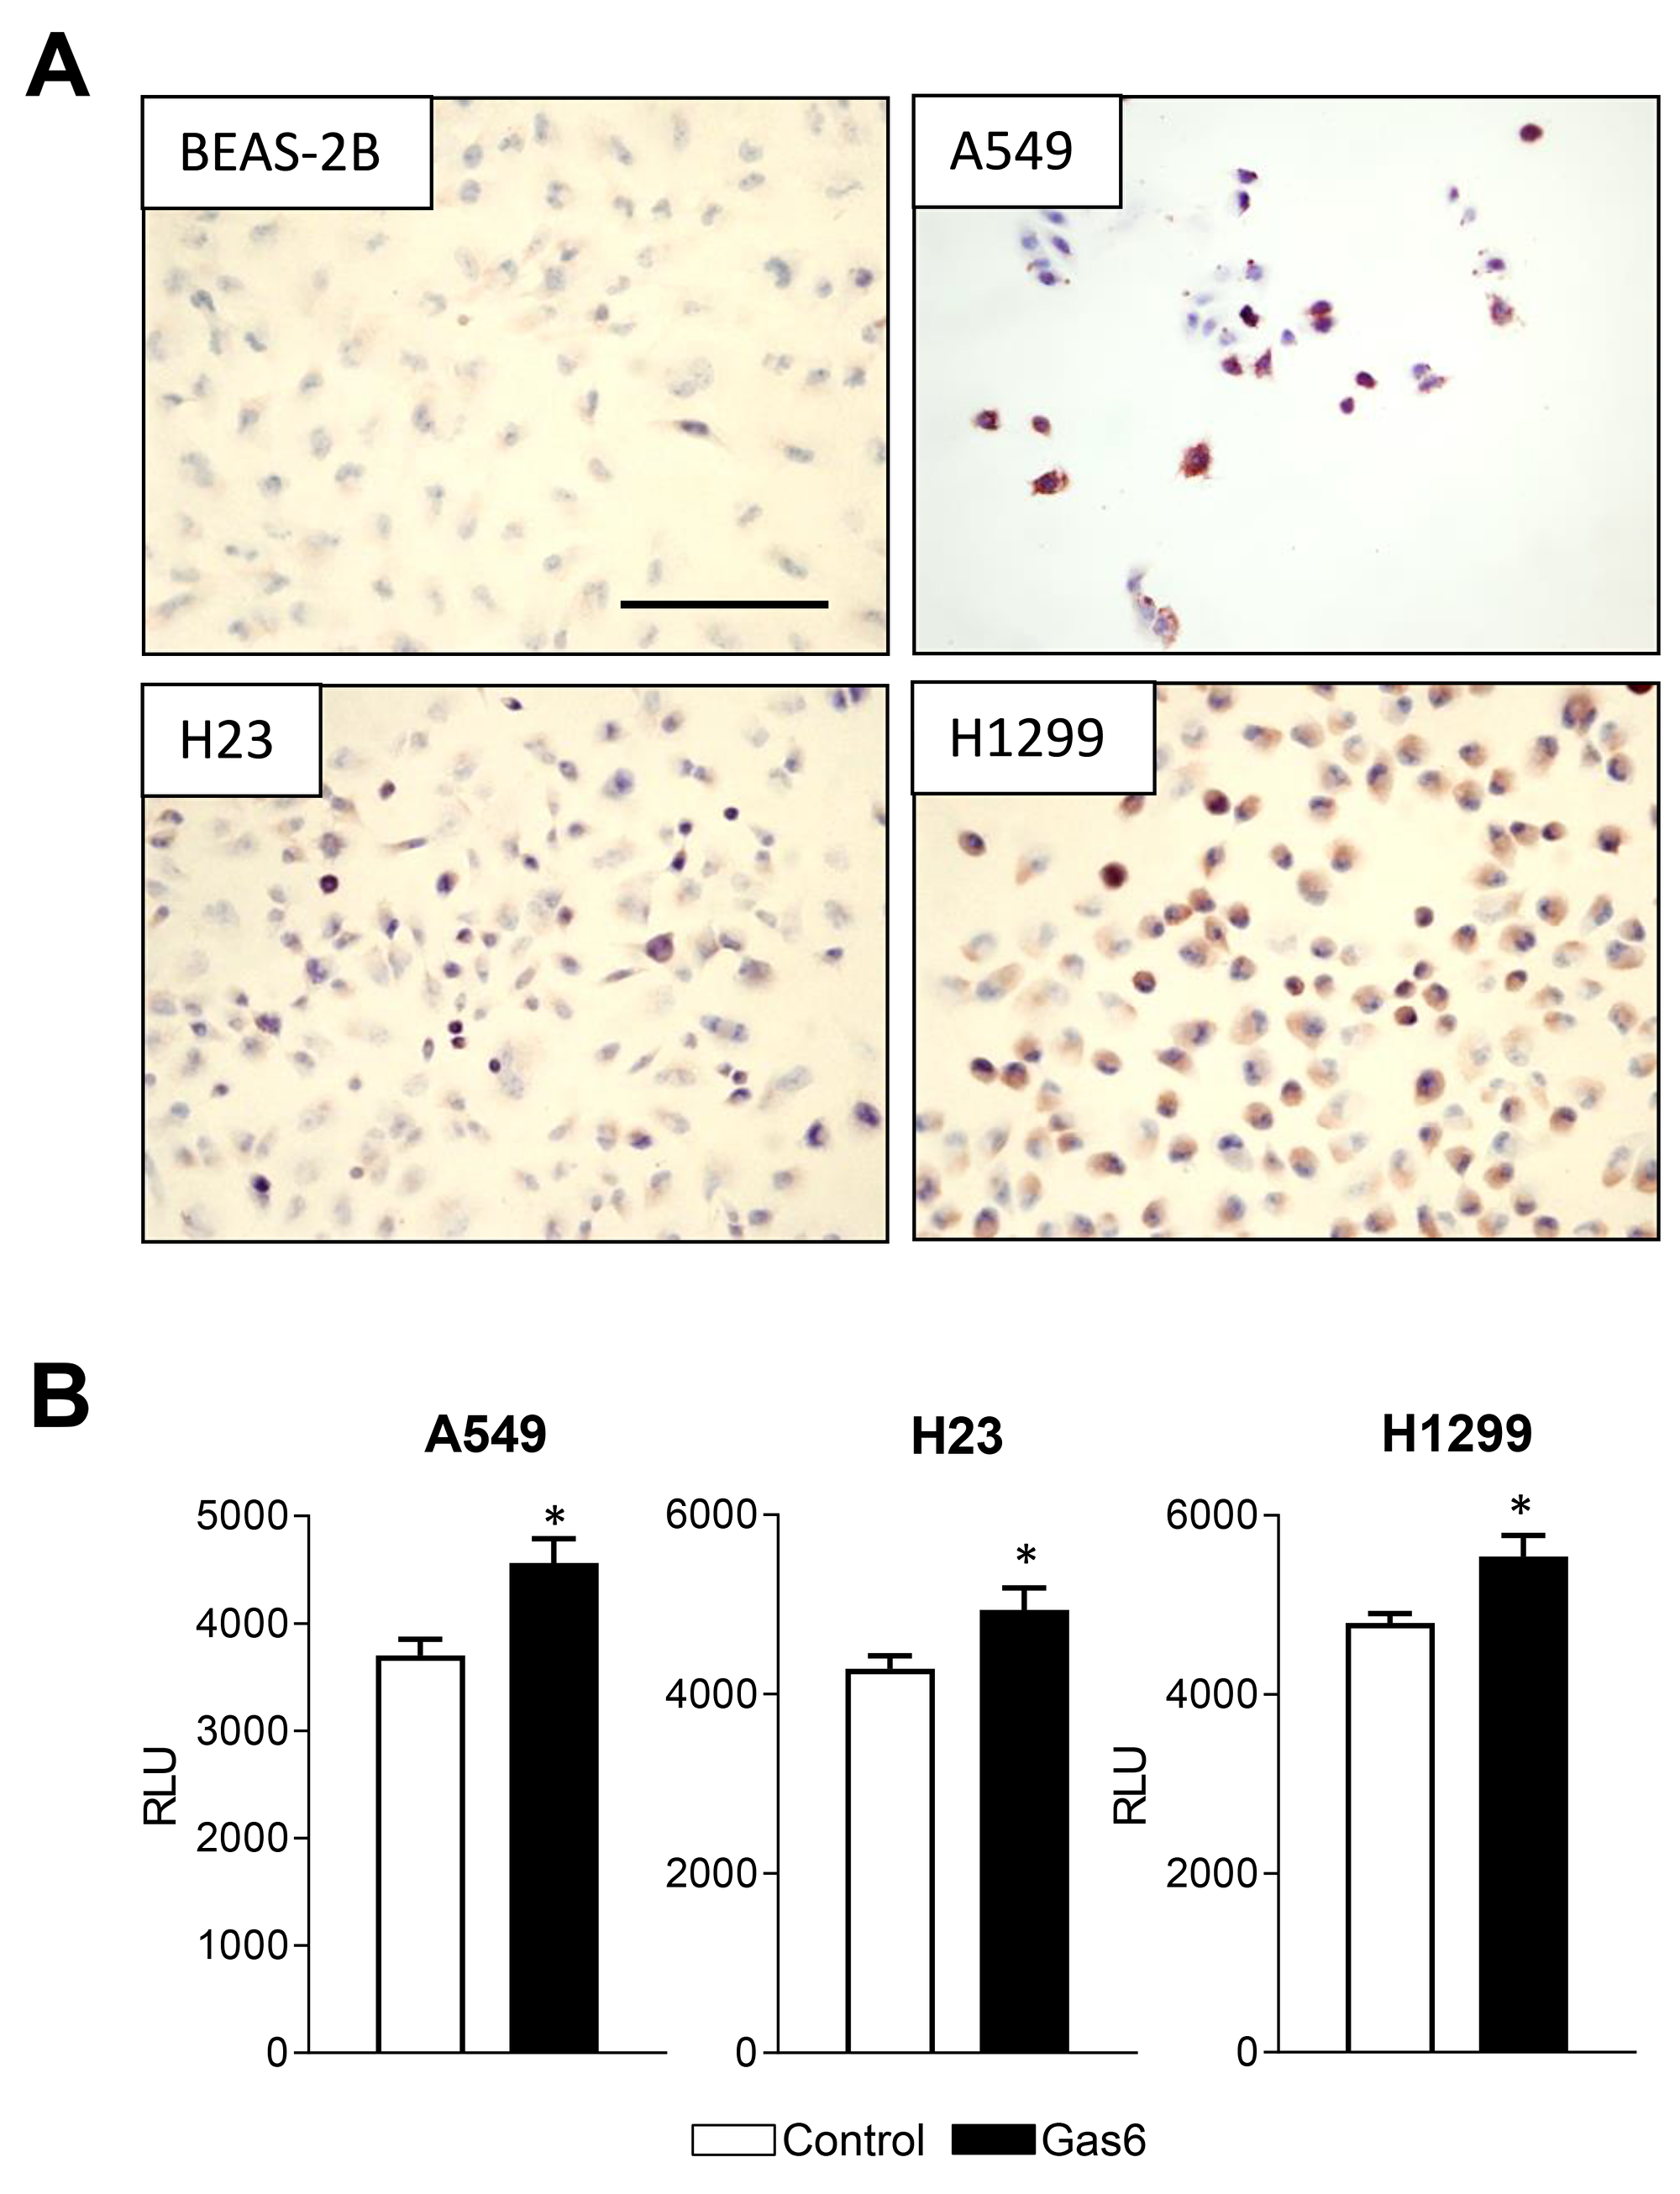 Gas6 promotes proliferation of human lung cancer cells.